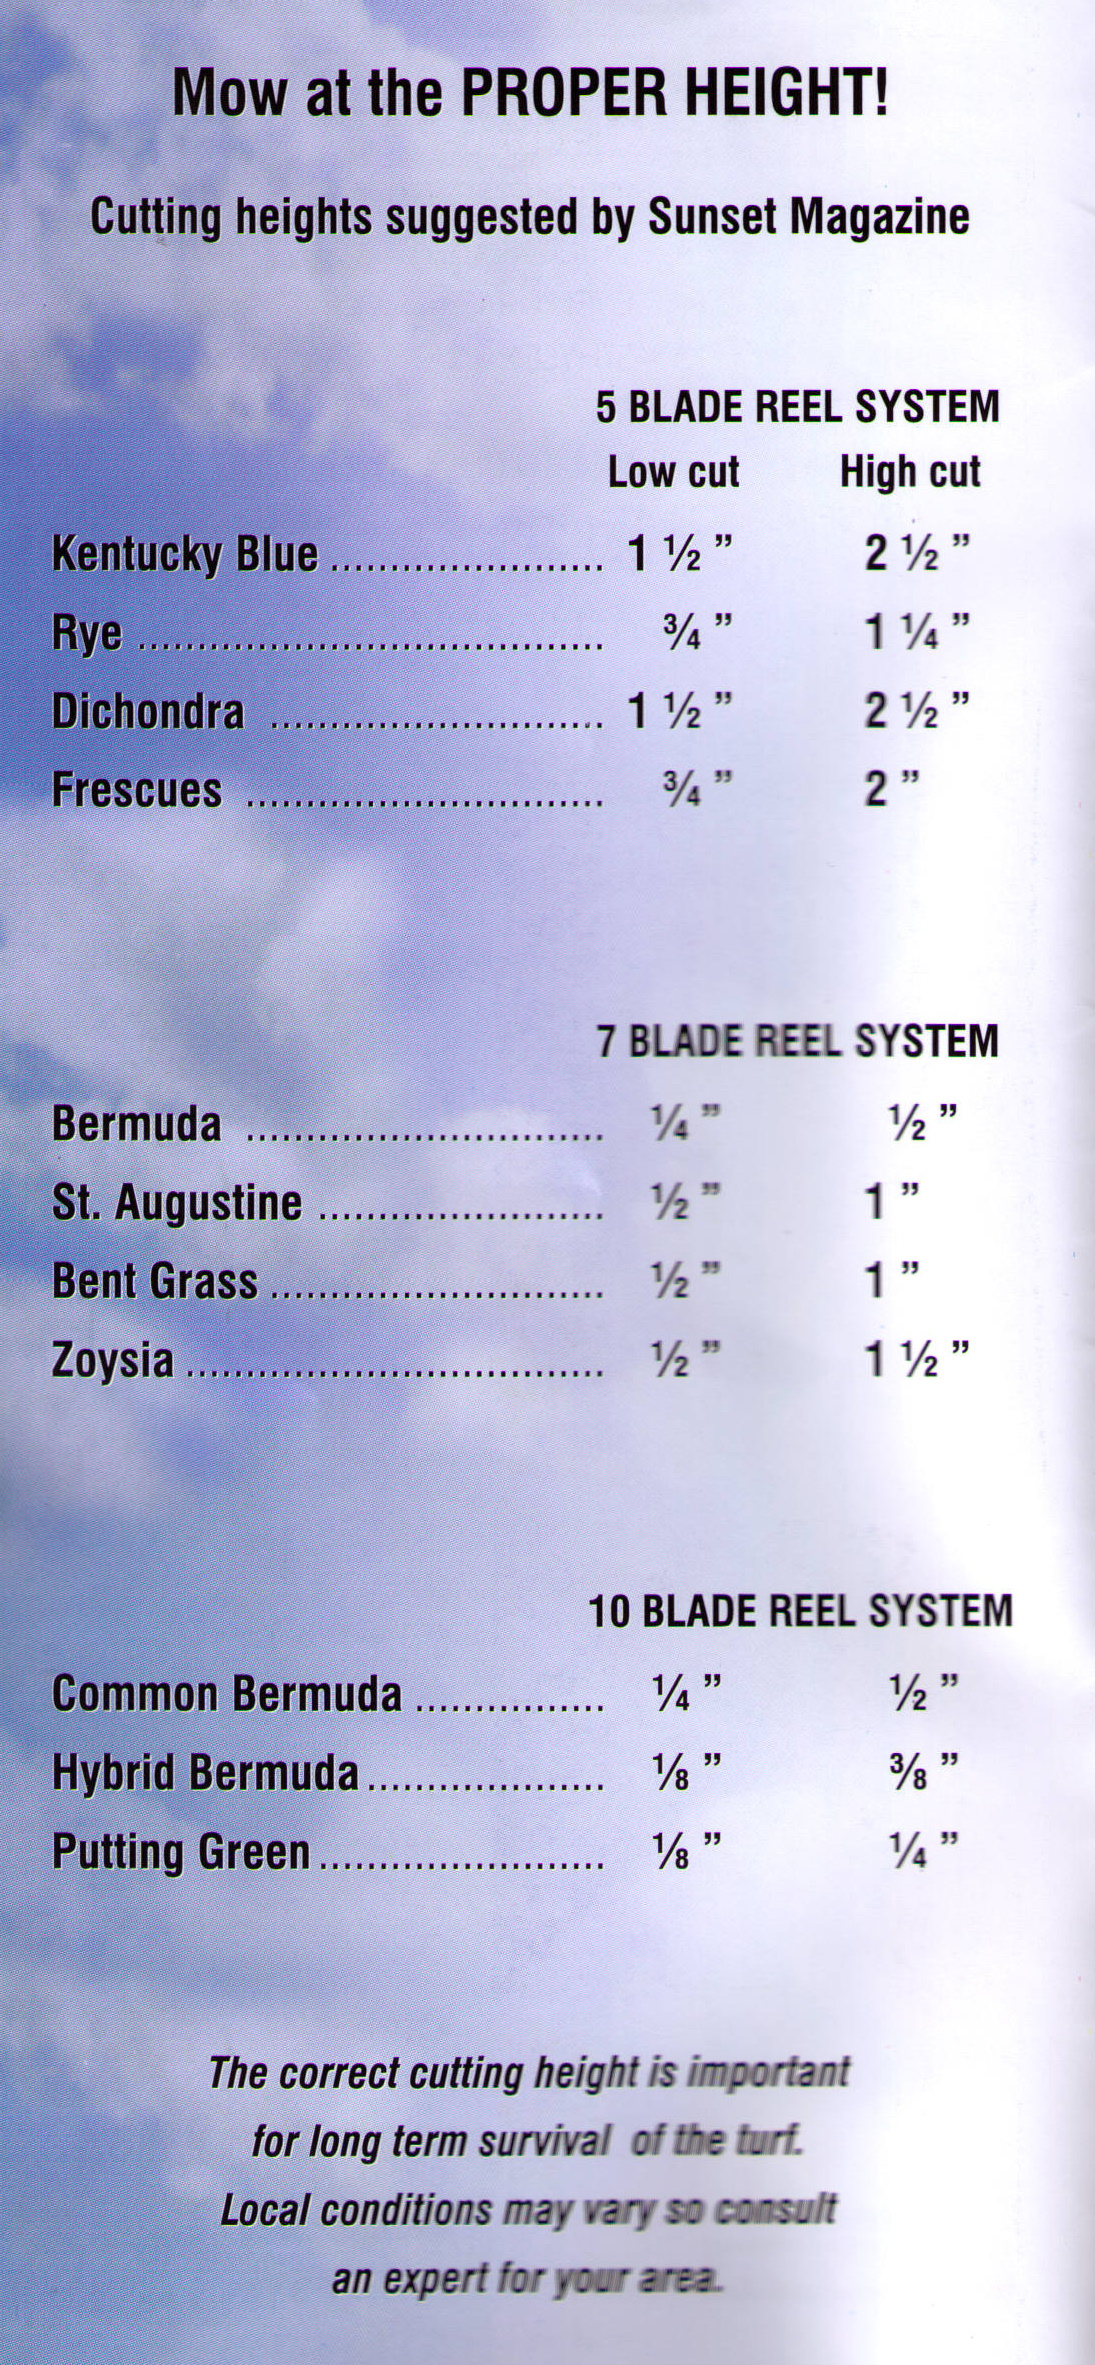 Recommended Cutting Heights For Popular Grass Varieties